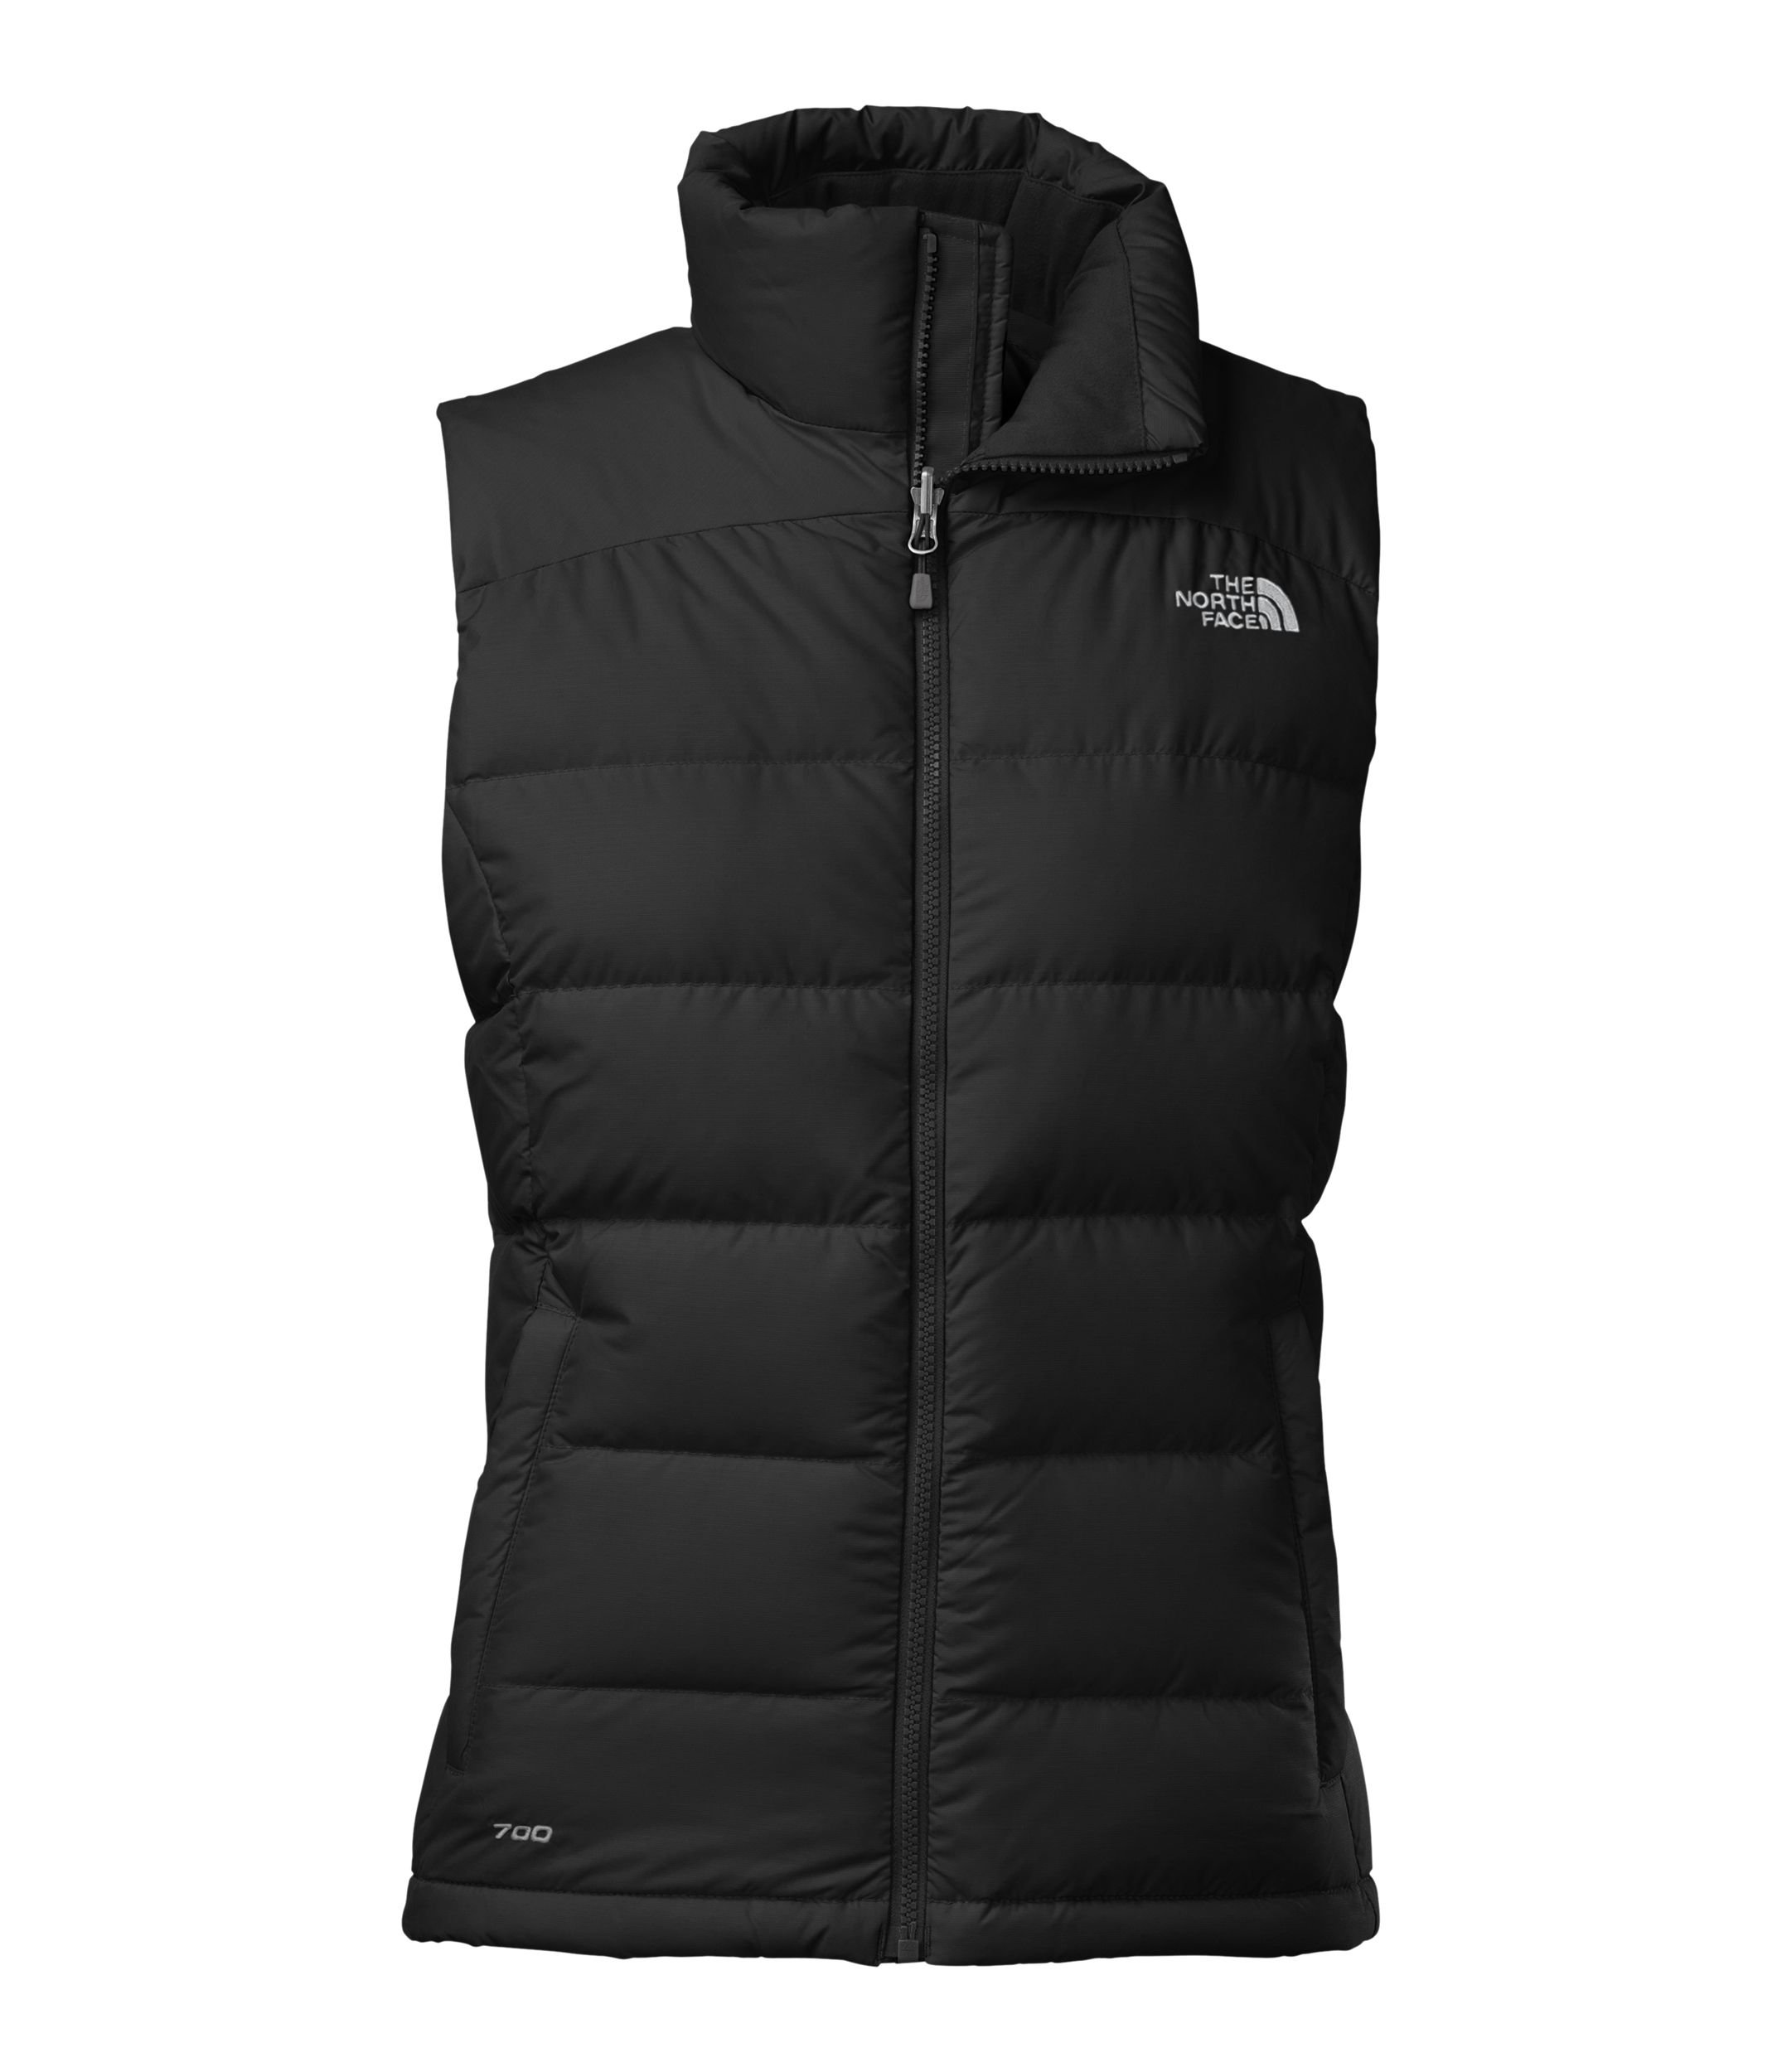 The North Face Nuptse 2 Vest - Women's TNF Black X-Large